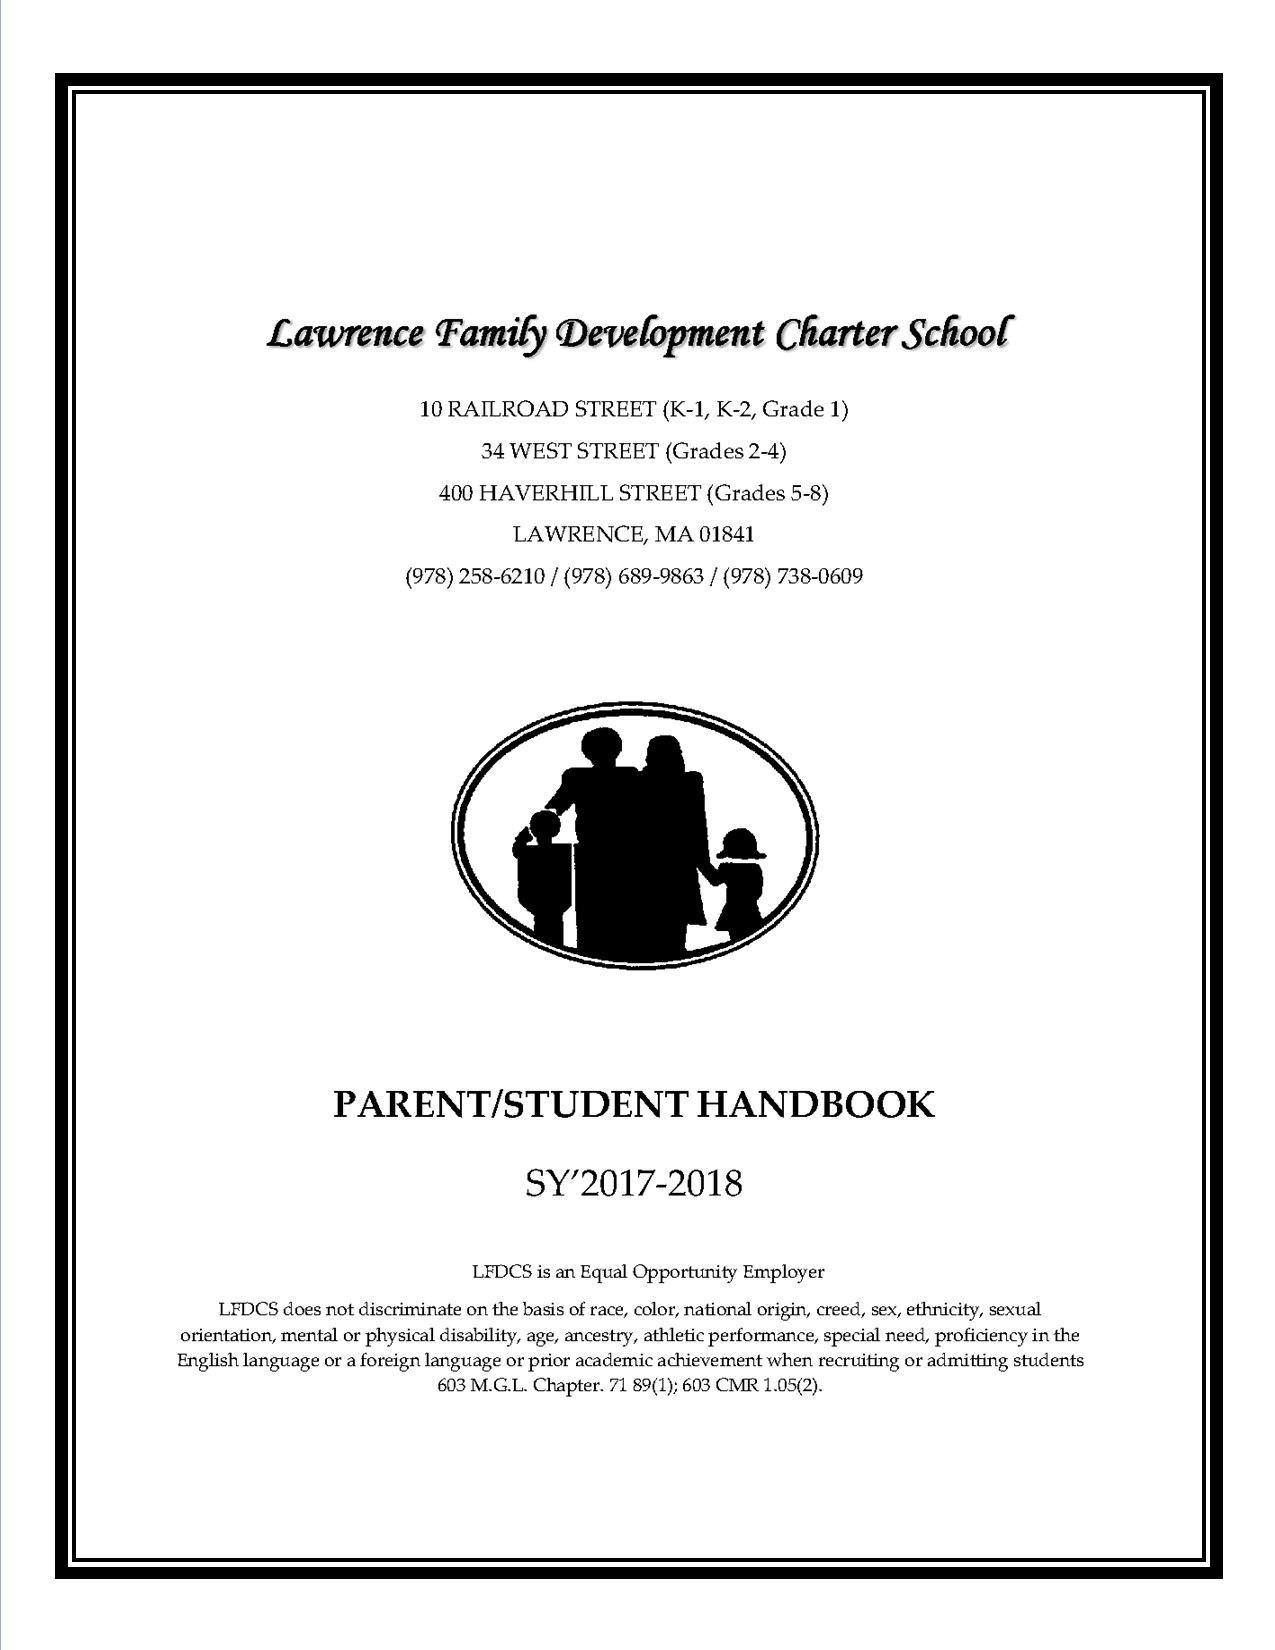 Parent Student Handbook Cover